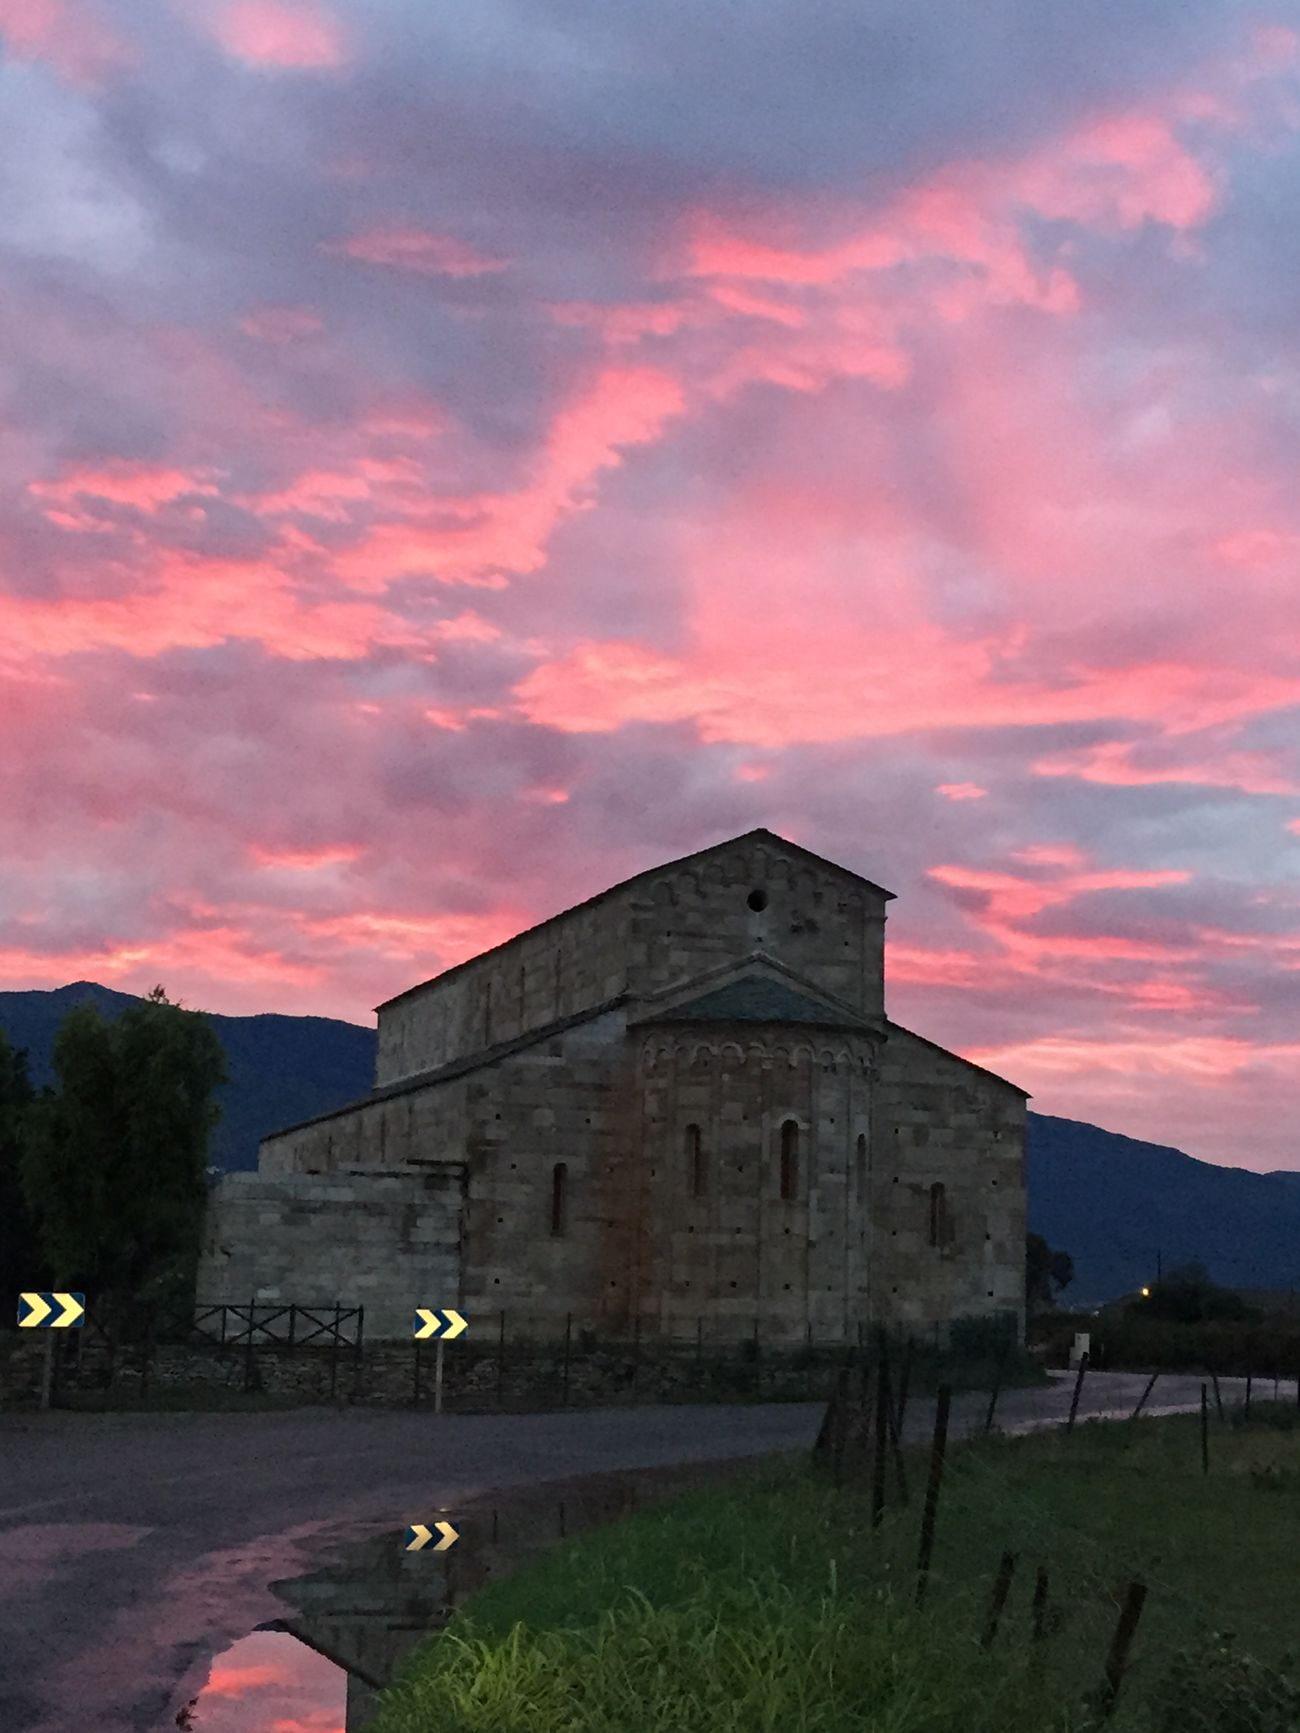 Clouds Clouds And Sky Eglise Chapel Sunset Igercorse Picoftheday Instagood Instapic Nofilter